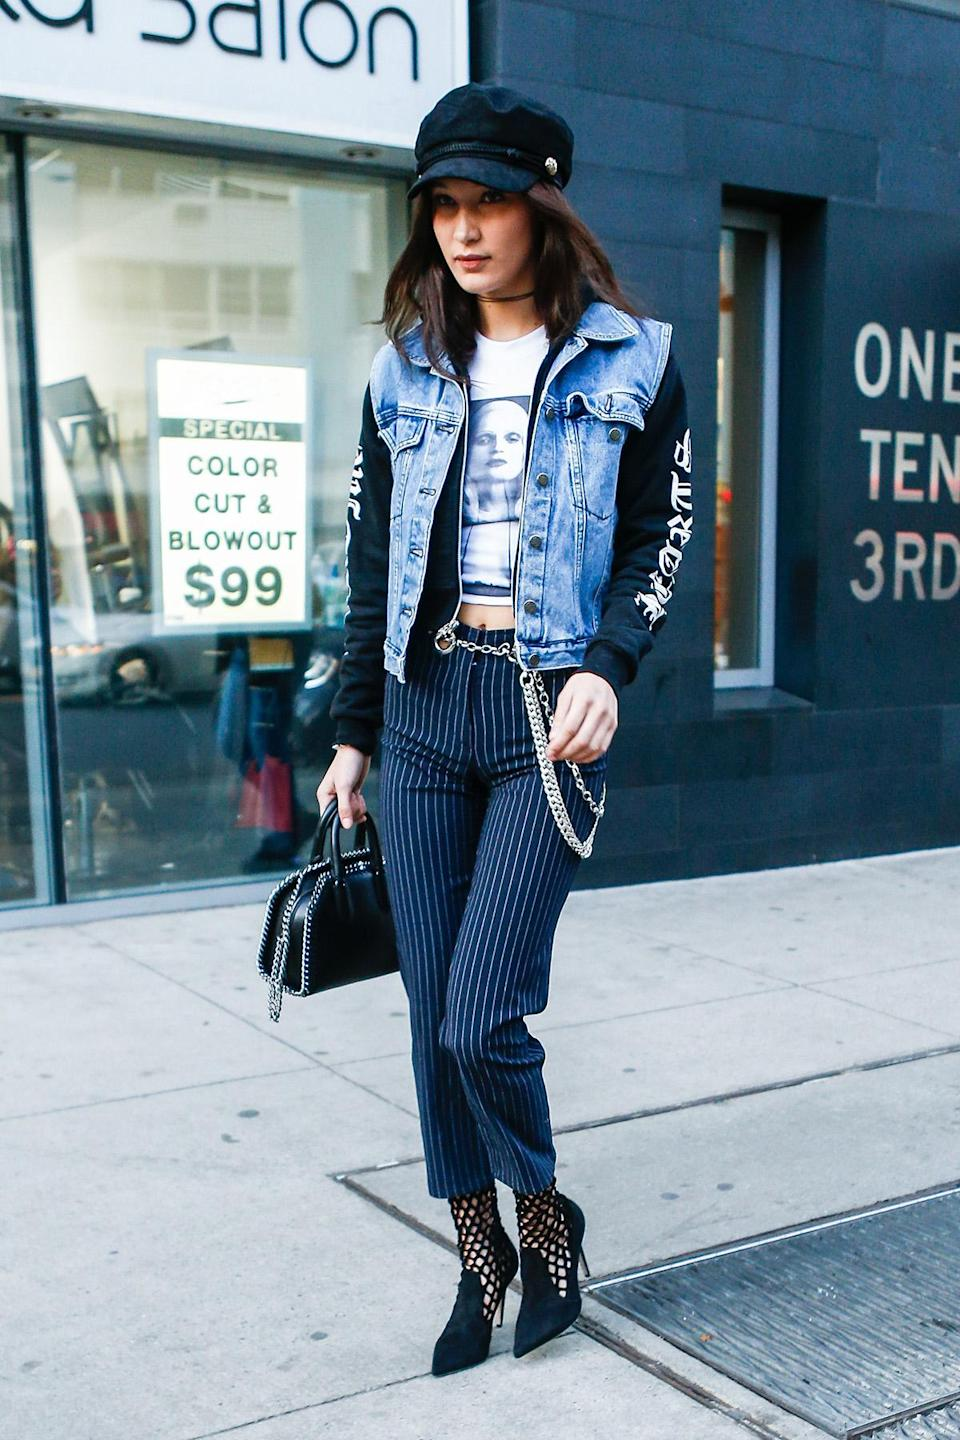 """<p>Gigi's younger sister Bella was also spotted in the brand in early January. She paired the label's <a rel=""""nofollow noopener"""" href=""""https://miaouxx.com/collections/denim/products/brigitte-jean-pinstripe"""" target=""""_blank"""" data-ylk=""""slk:$325 pinstripe pants"""" class=""""link rapid-noclick-resp"""">$325 pinstripe pants</a> with a graphic tee, a hoodie, and a denim vest. She also added the Miaou's $85 <a rel=""""nofollow noopener"""" href=""""https://miaouxx.com/collections/belts/products/chain-belt"""" target=""""_blank"""" data-ylk=""""slk:metal chain-link belt"""" class=""""link rapid-noclick-resp"""">metal chain-link belt </a>and $325 <a rel=""""nofollow noopener"""" href=""""https://miaouxx.com/collections/belts/products/side-piece"""" target=""""_blank"""" data-ylk=""""slk:side piece"""" class=""""link rapid-noclick-resp"""">side piece</a> to the look. (Photo: AKM-GSI) <br><br></p>"""